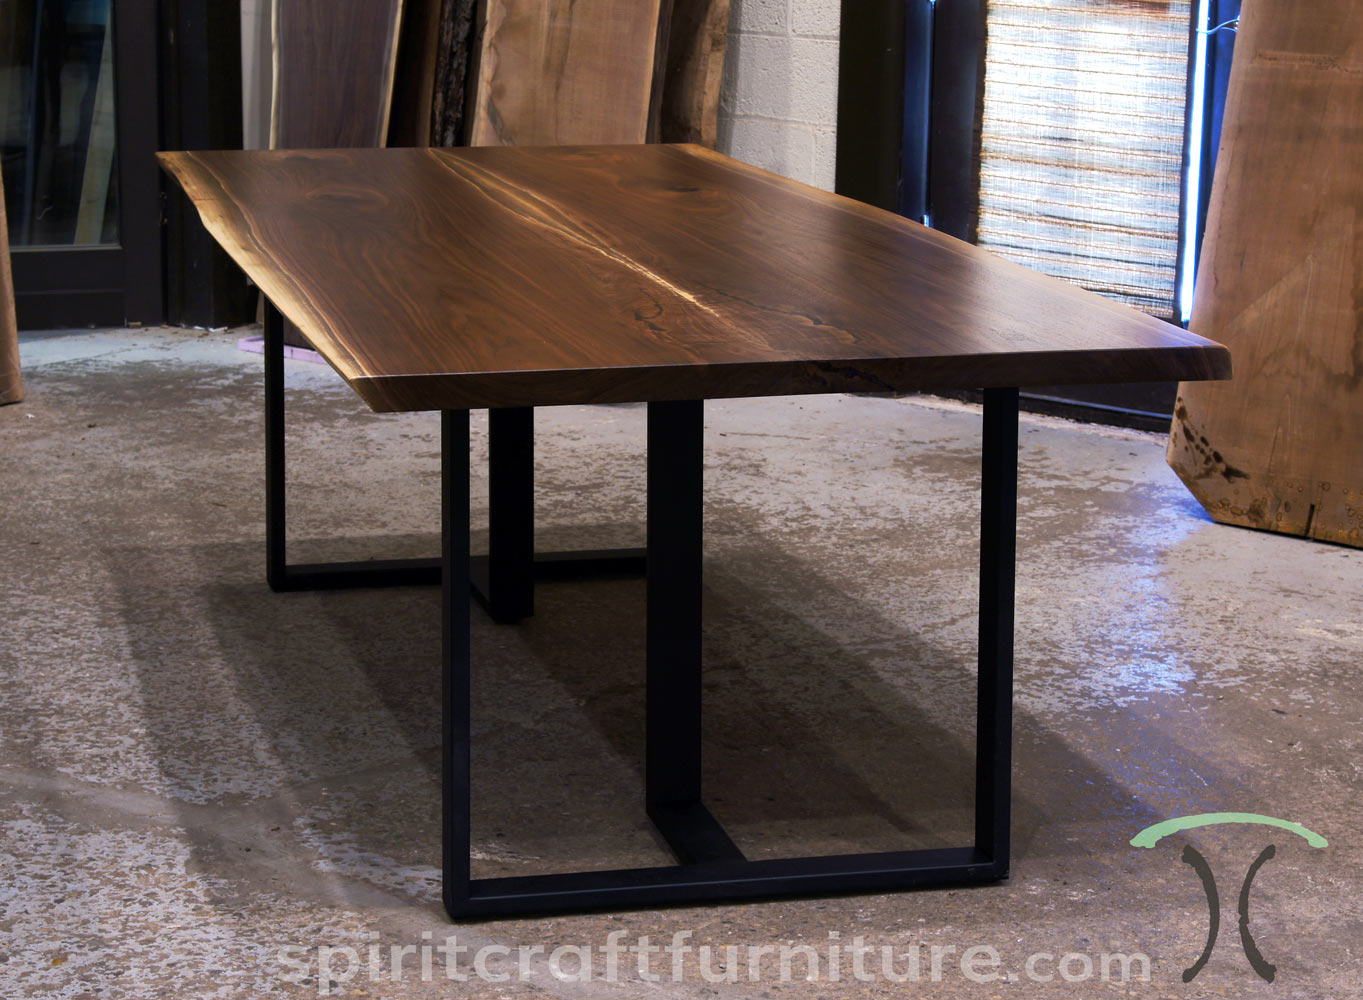 Urban Sofa Live Edge Live Edge Slab Dining Tables Walnut Slabs And Tops